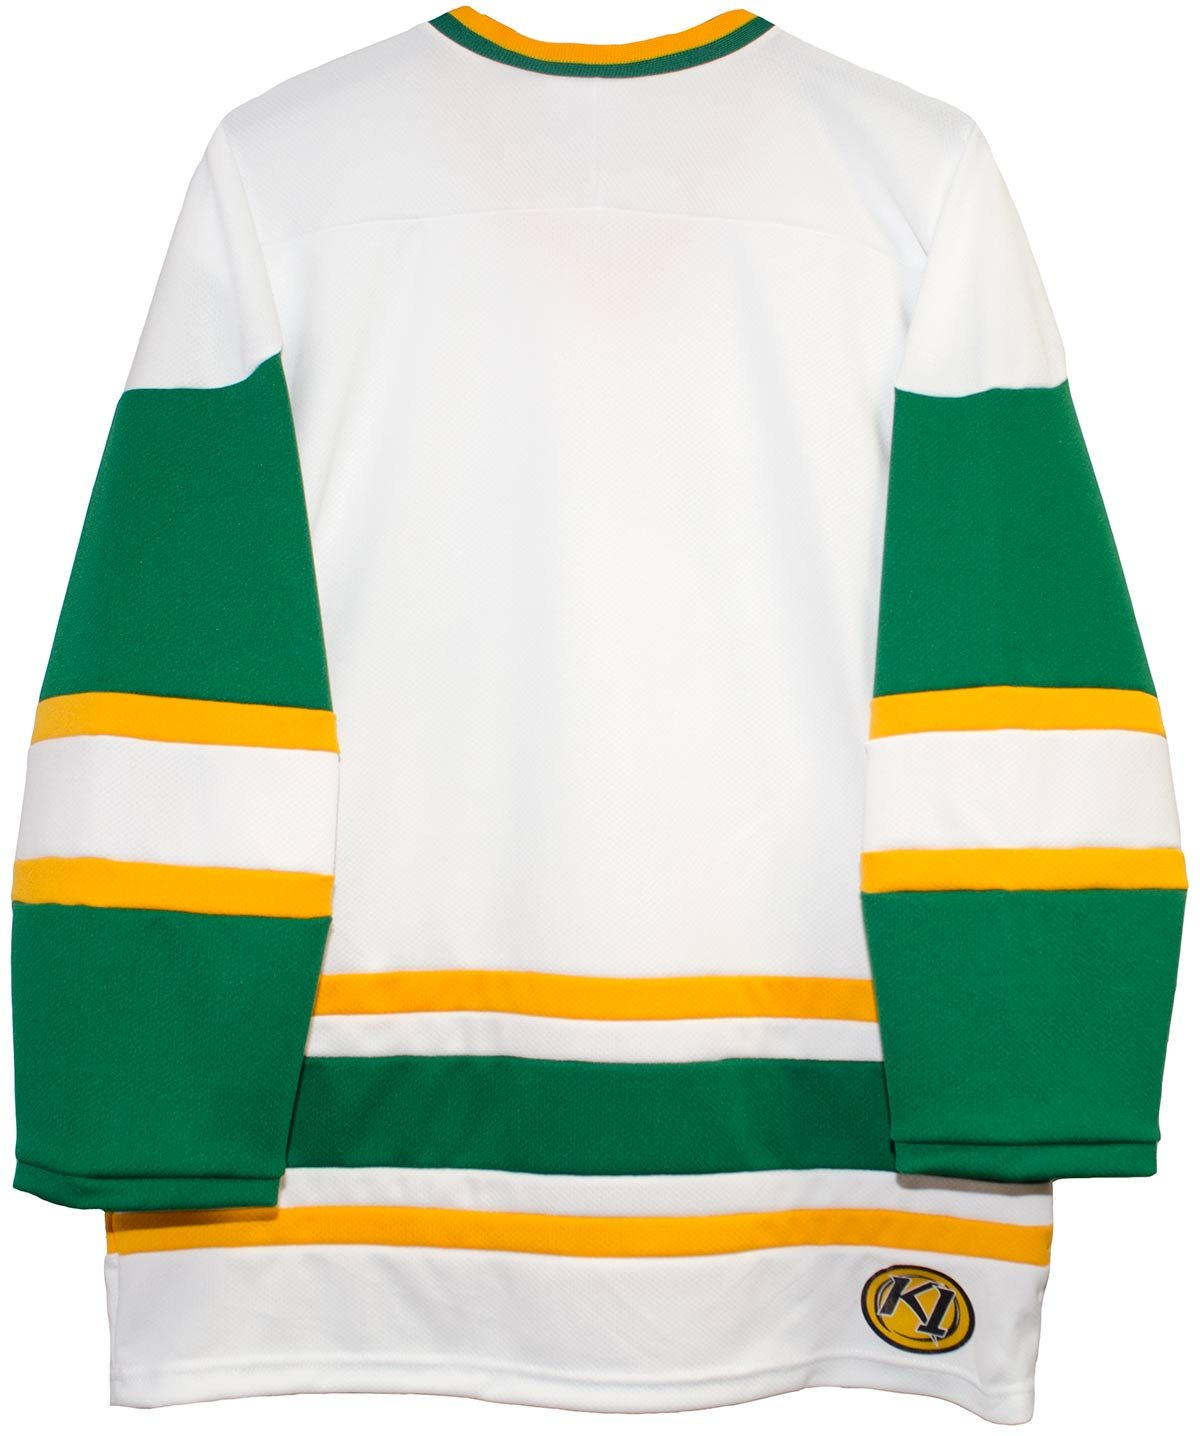 Amazon.com   K-1 Sportswear New England Whalers Home White Vintage WHA  Hockey Jersey   Sports   Outdoors a1ea33ecc